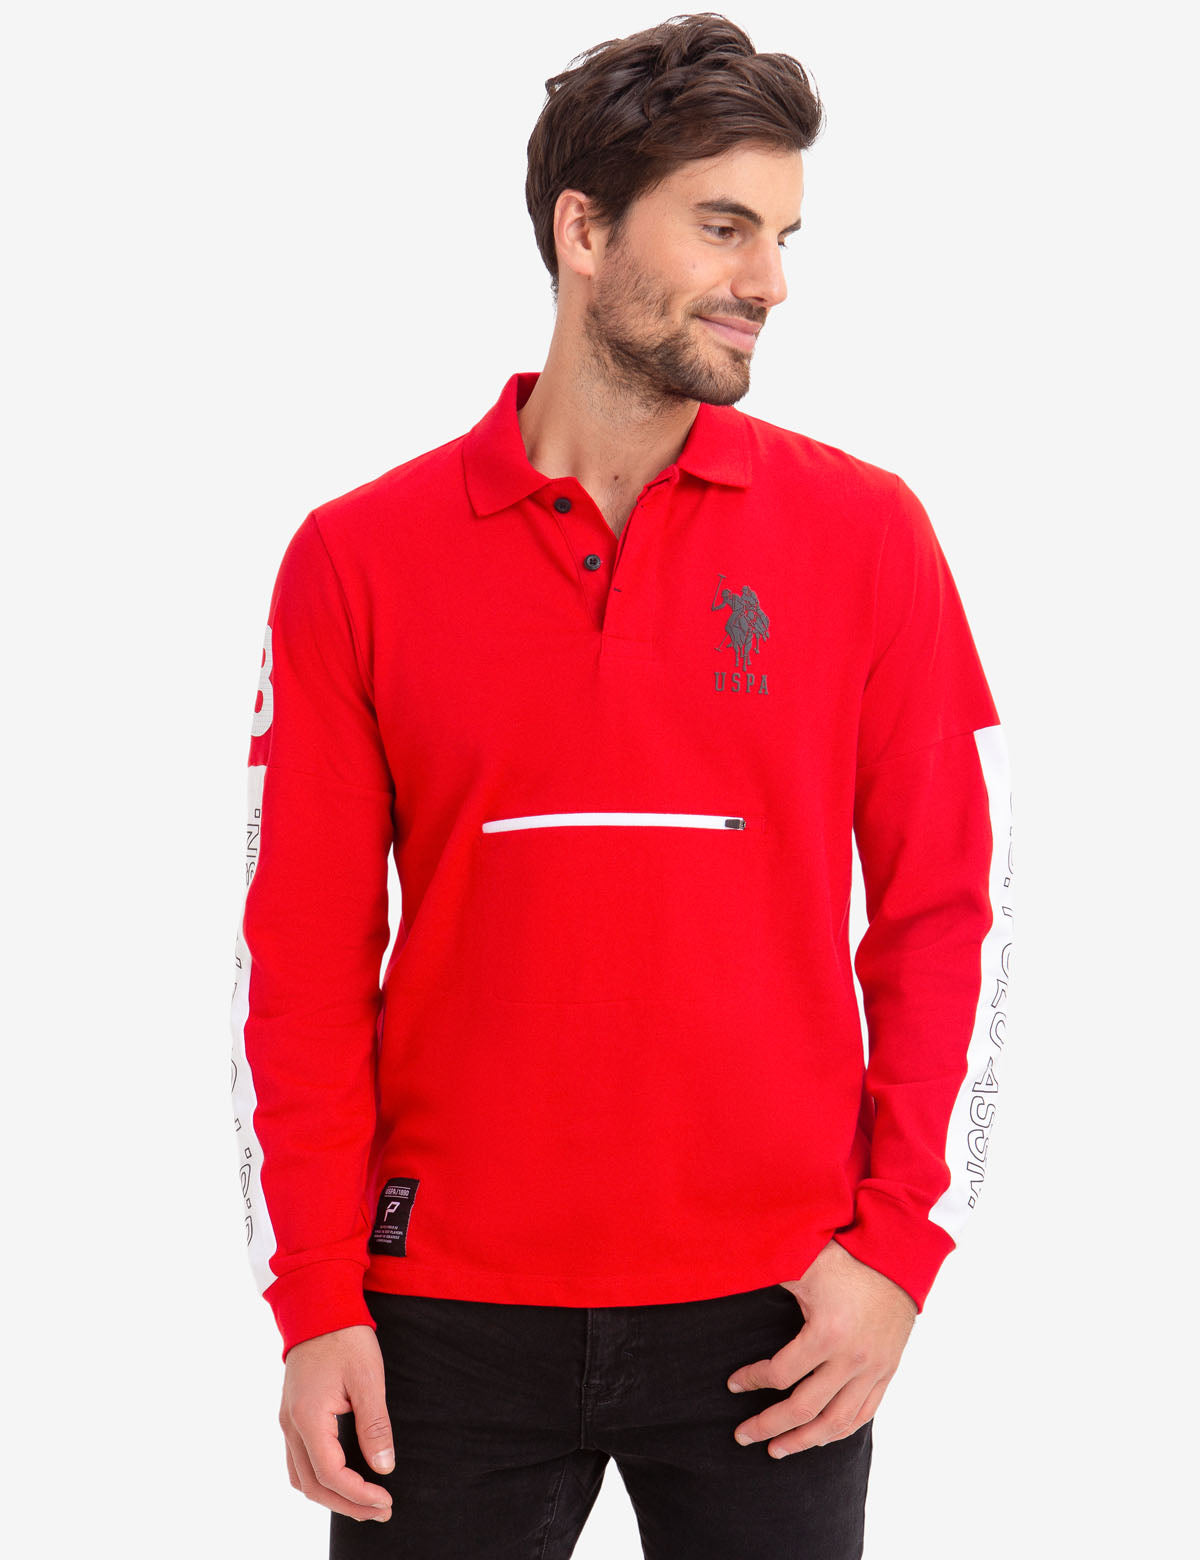 COLORBLOCK ZIP POCKET LONG SLEEVE STRETCH POLO SHIRT